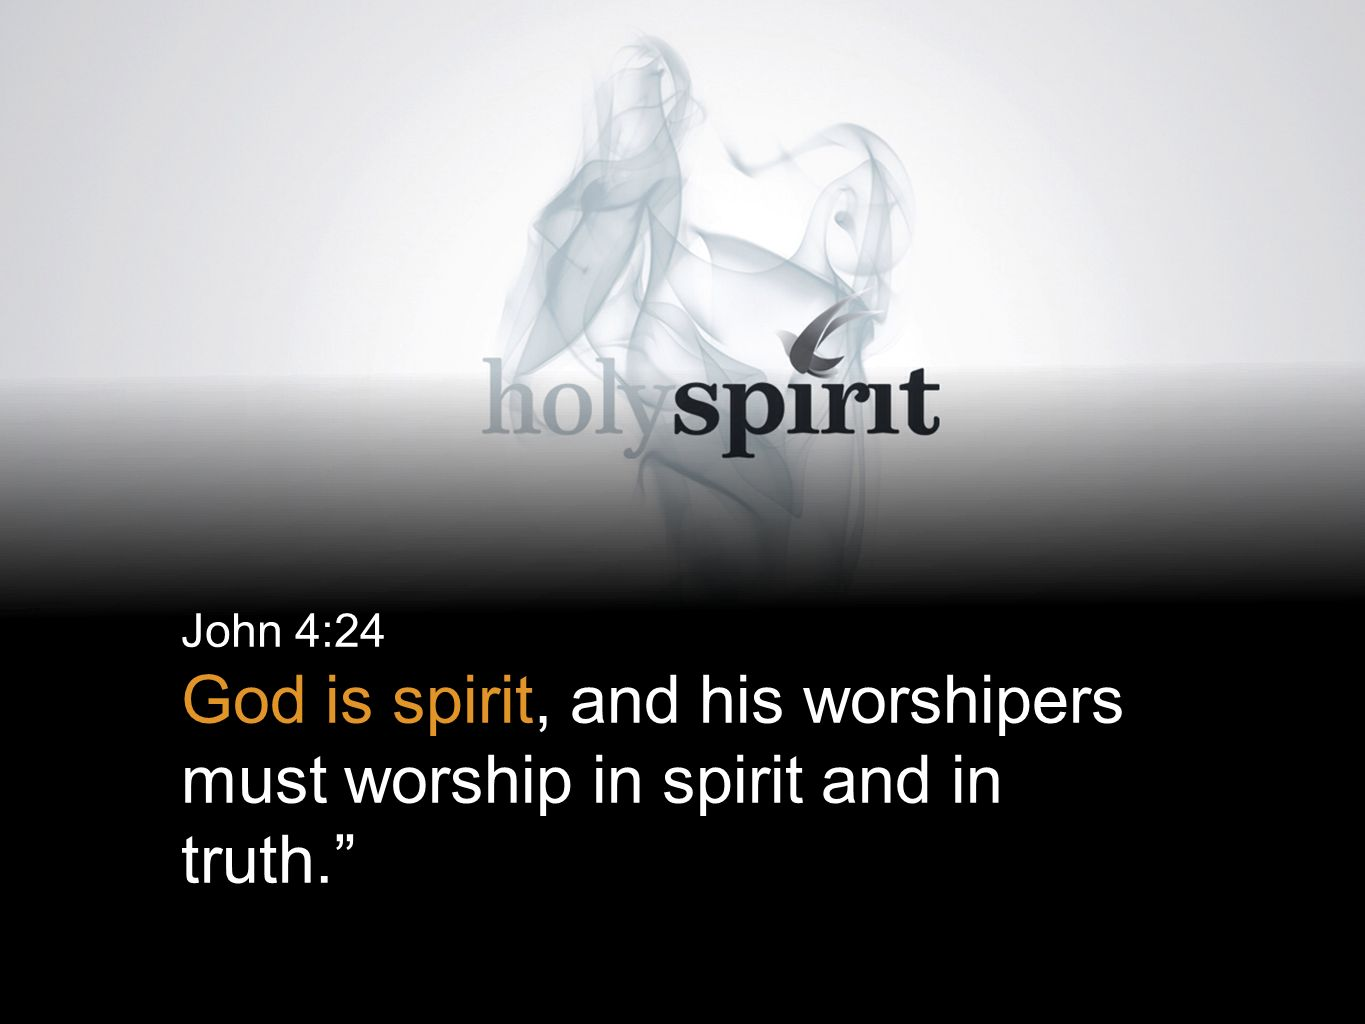 John 4:24 God is spirit, and his worshipers must worship in spirit and in truth.